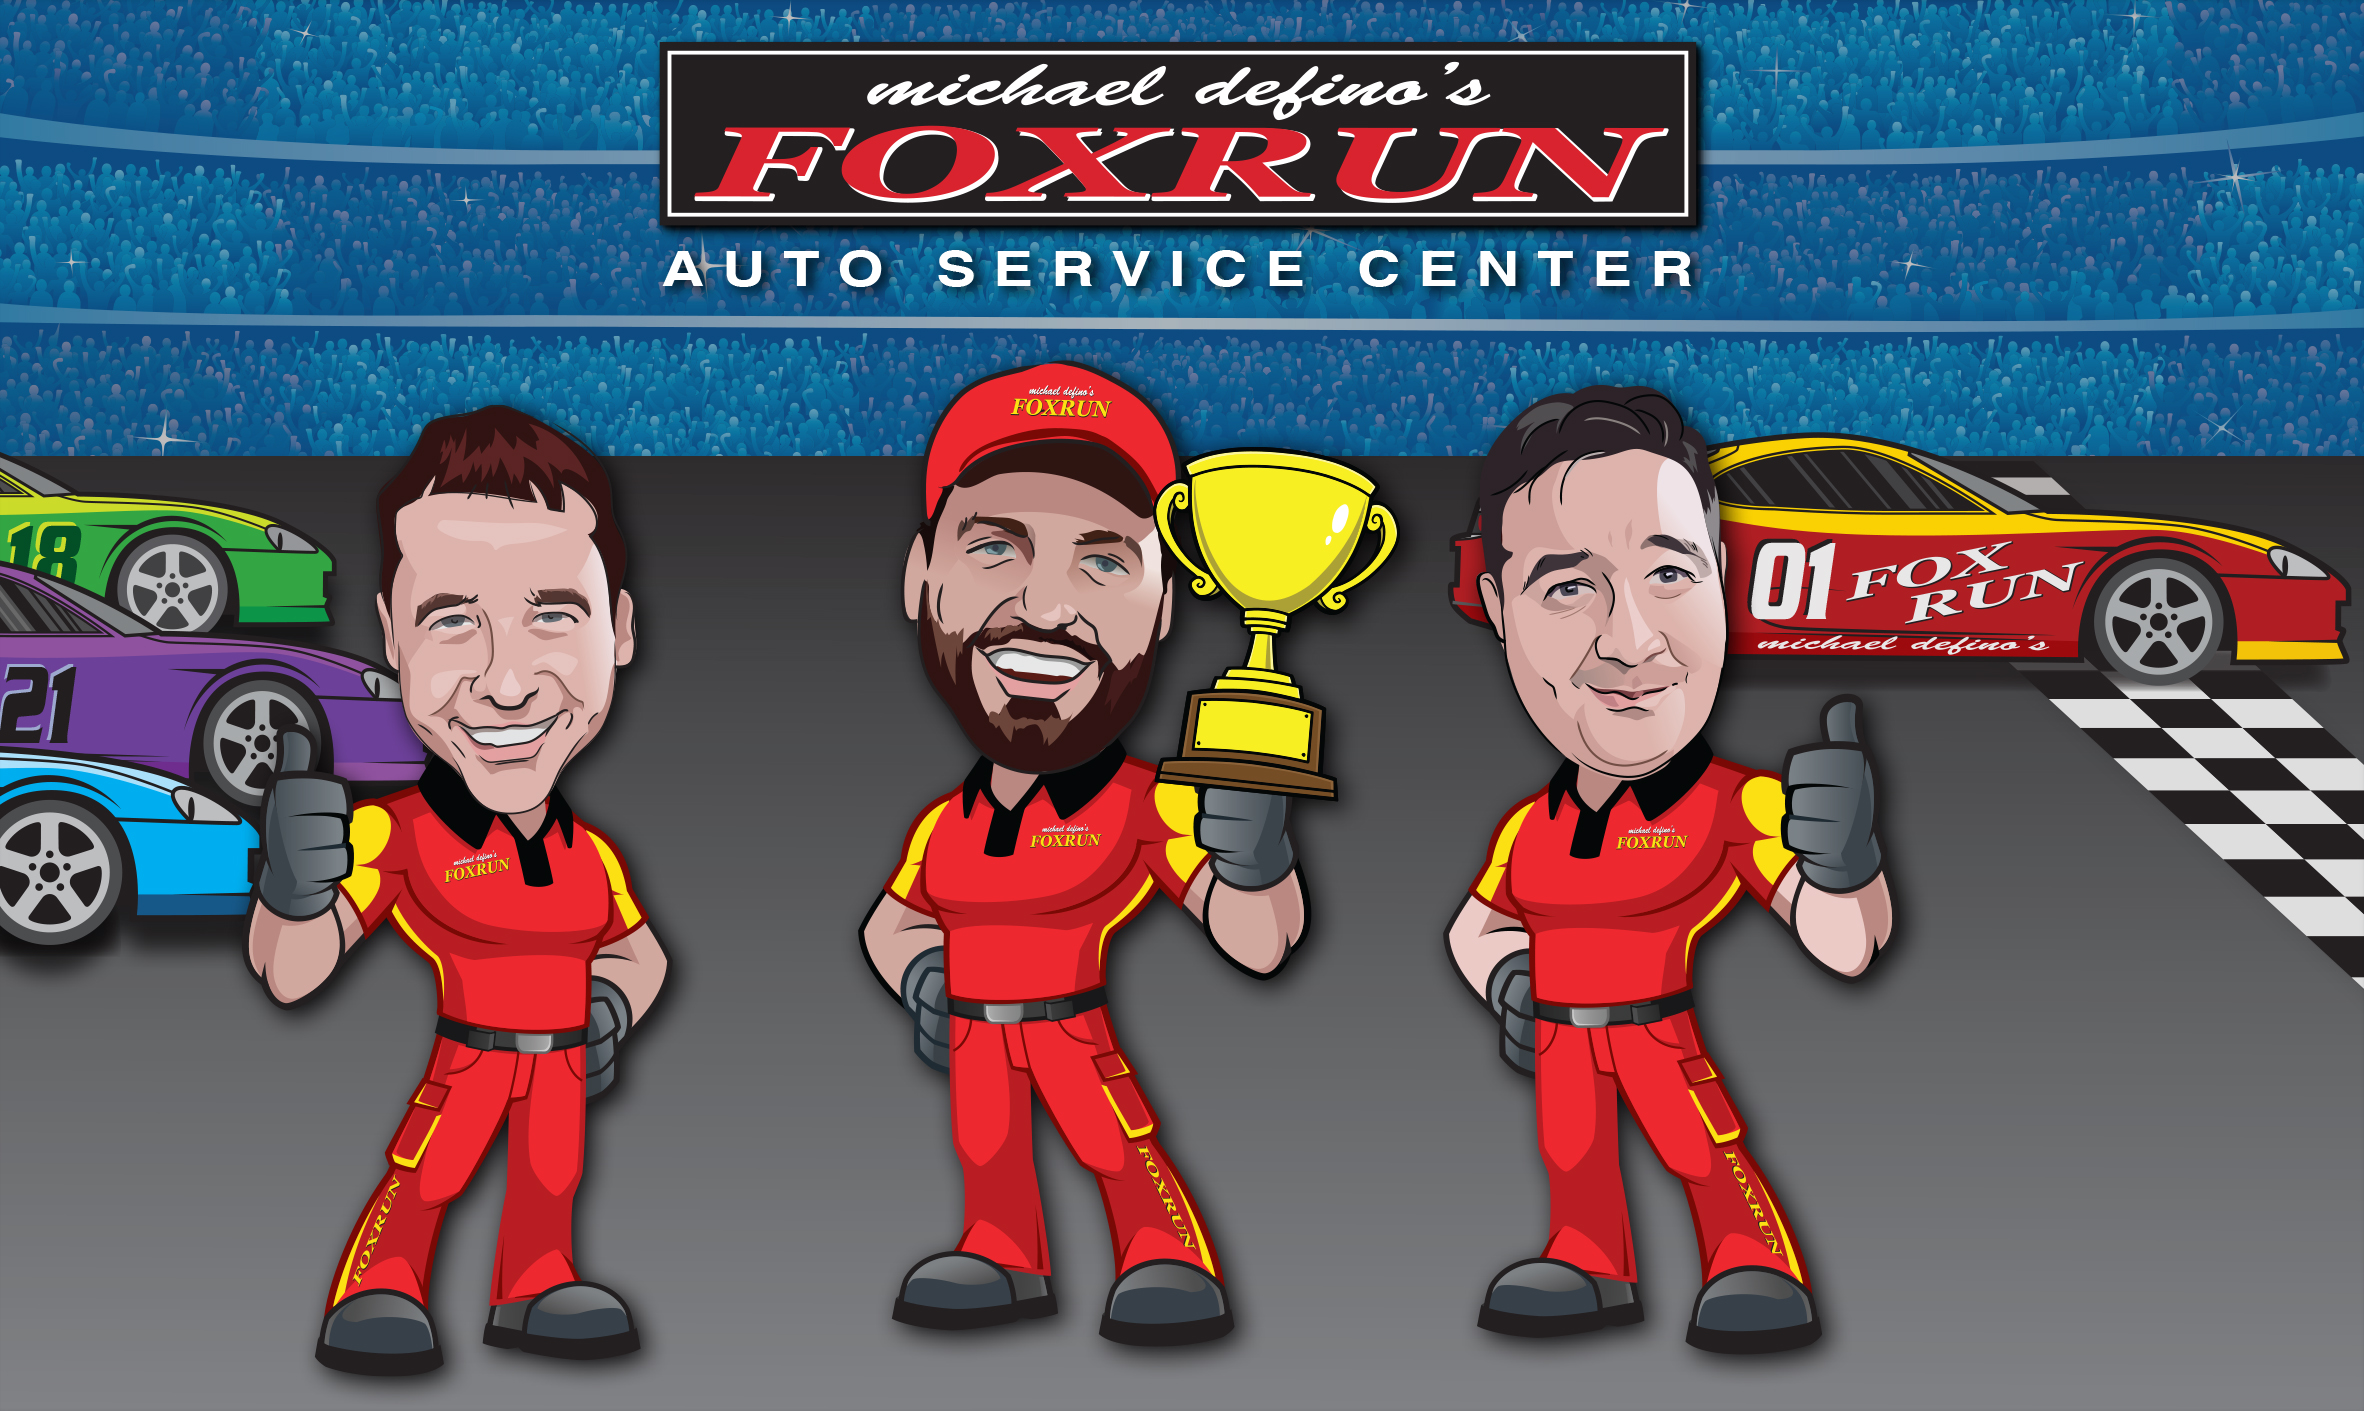 Count on the Winning Team at Fox Run Auto